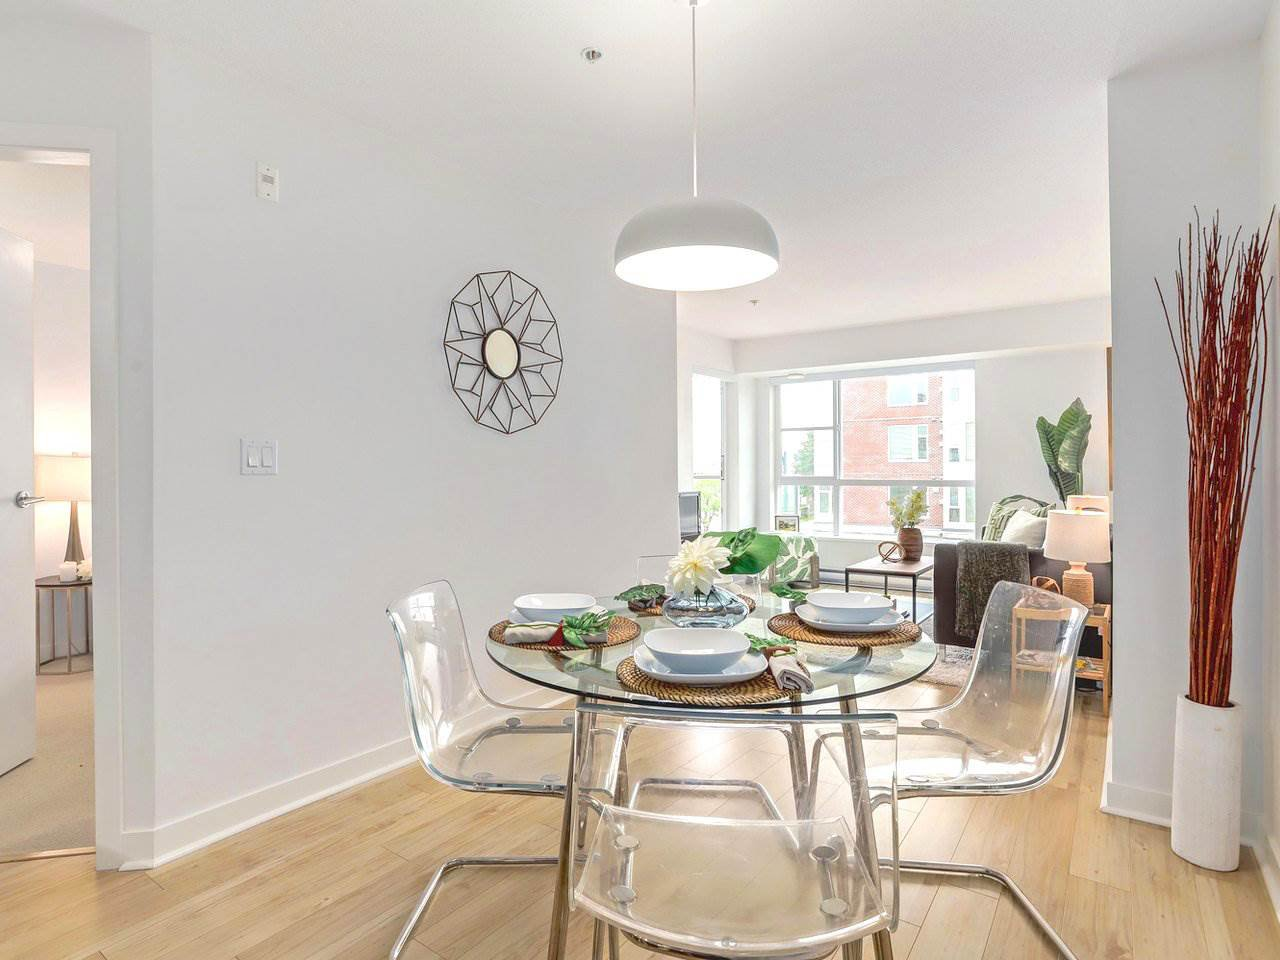 """Main Photo: 312 2888 E 2ND Avenue in Vancouver: Renfrew VE Condo for sale in """"SESAME"""" (Vancouver East)  : MLS®# R2270930"""